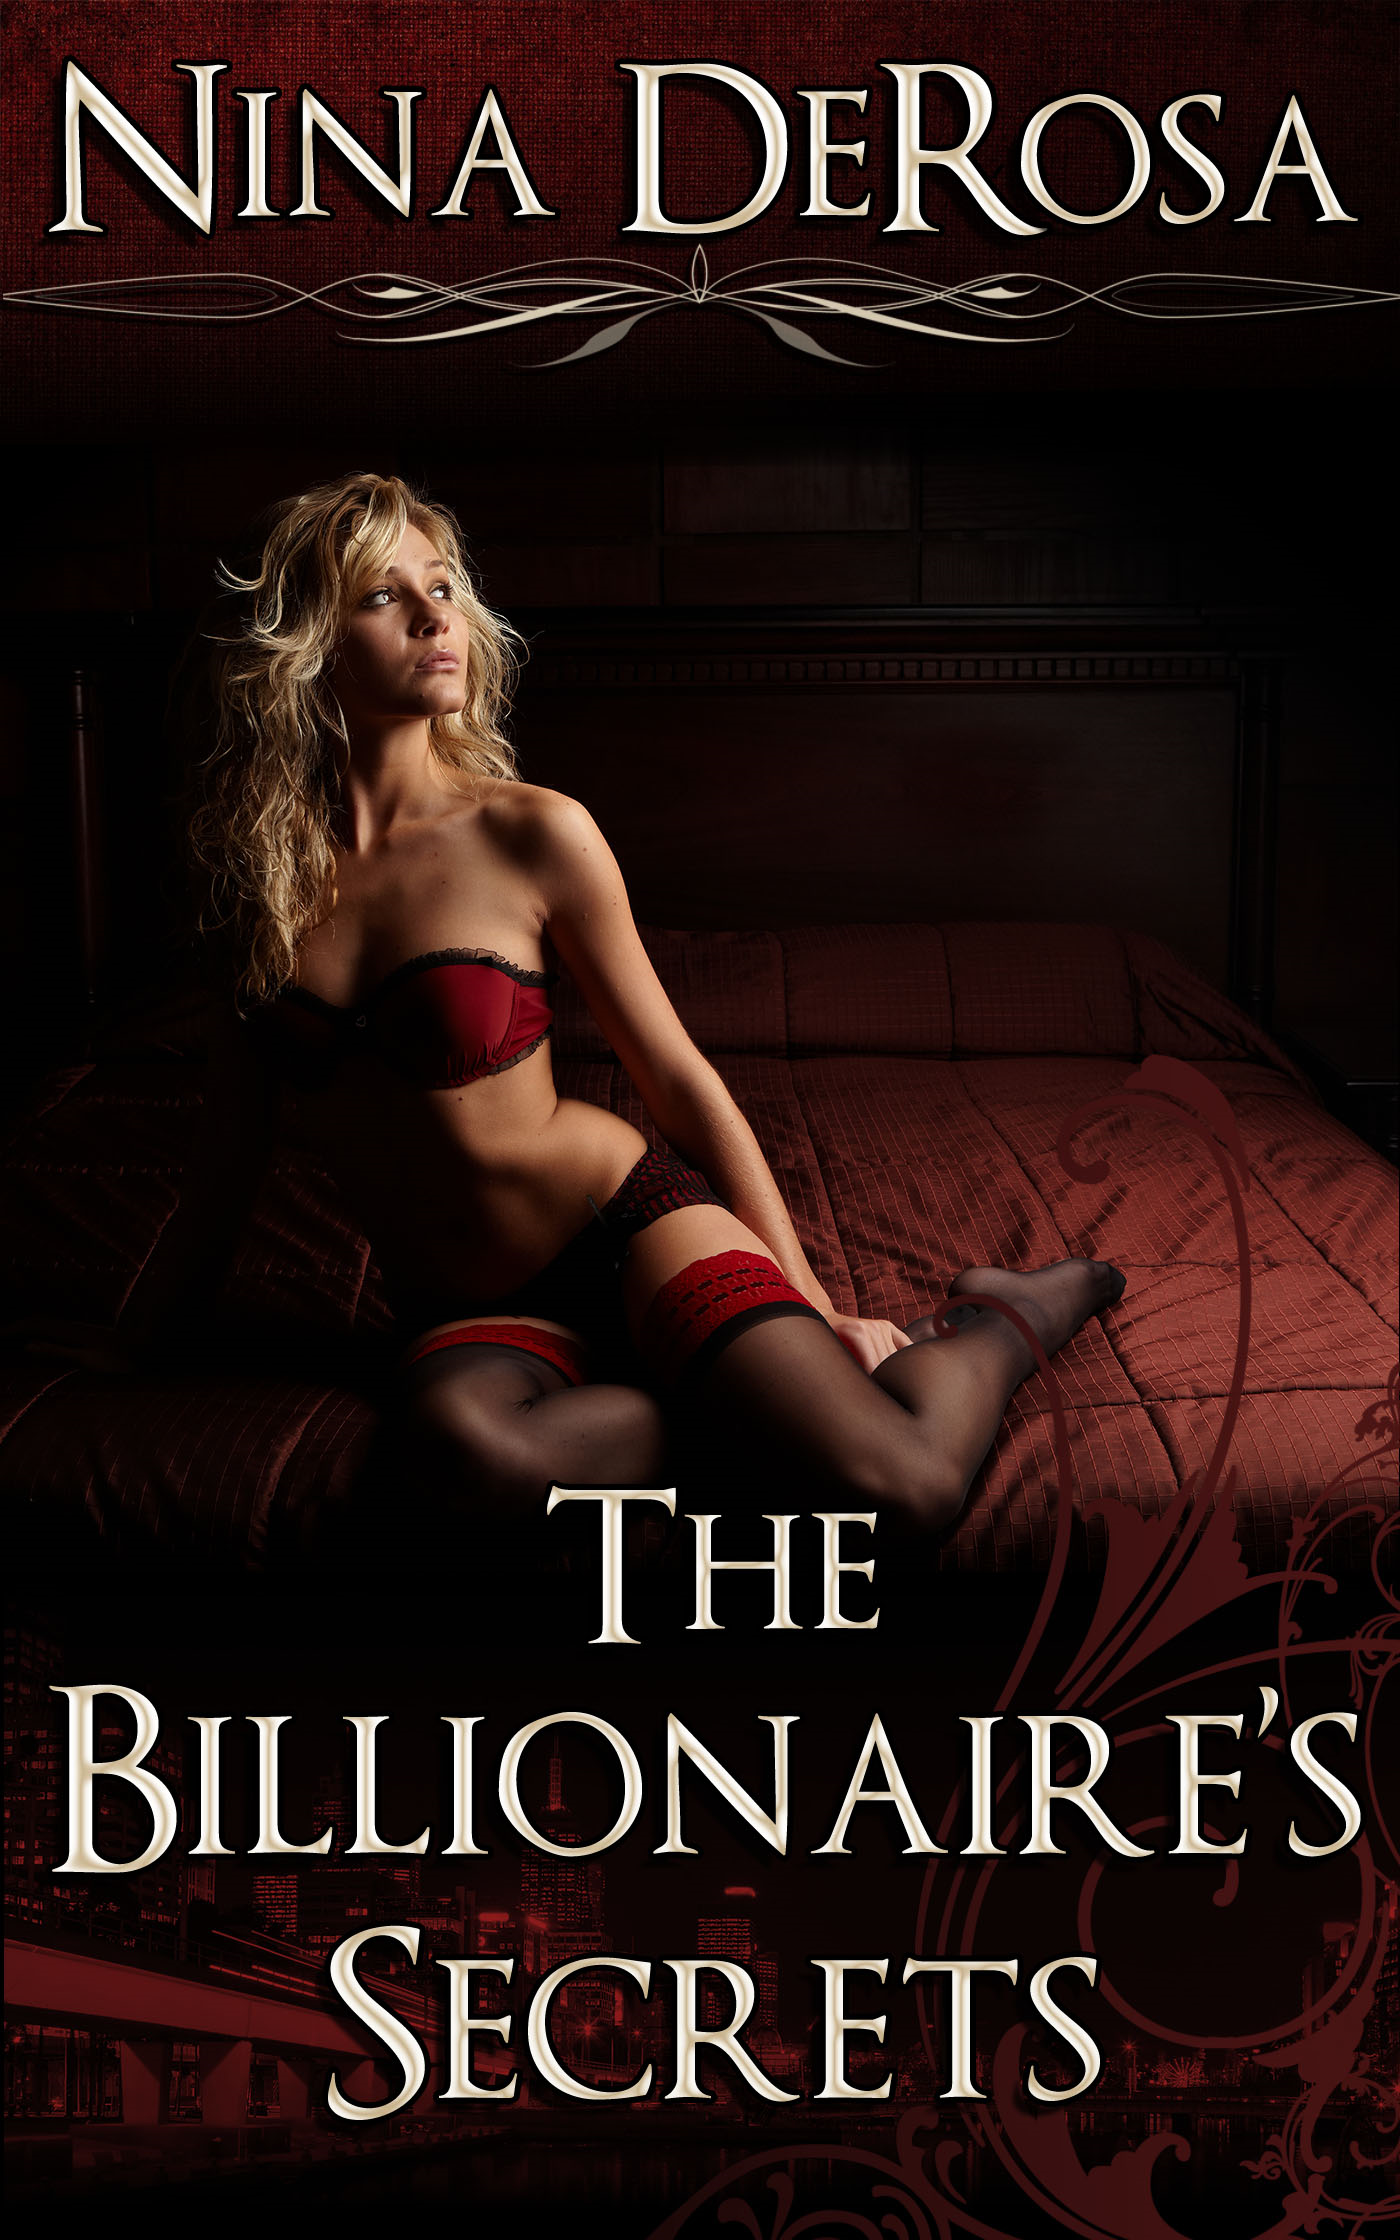 The Billionaire's Secrets (erotic romance, erotic thriller, billionaire romance, billionaire suspense, light bdsm)